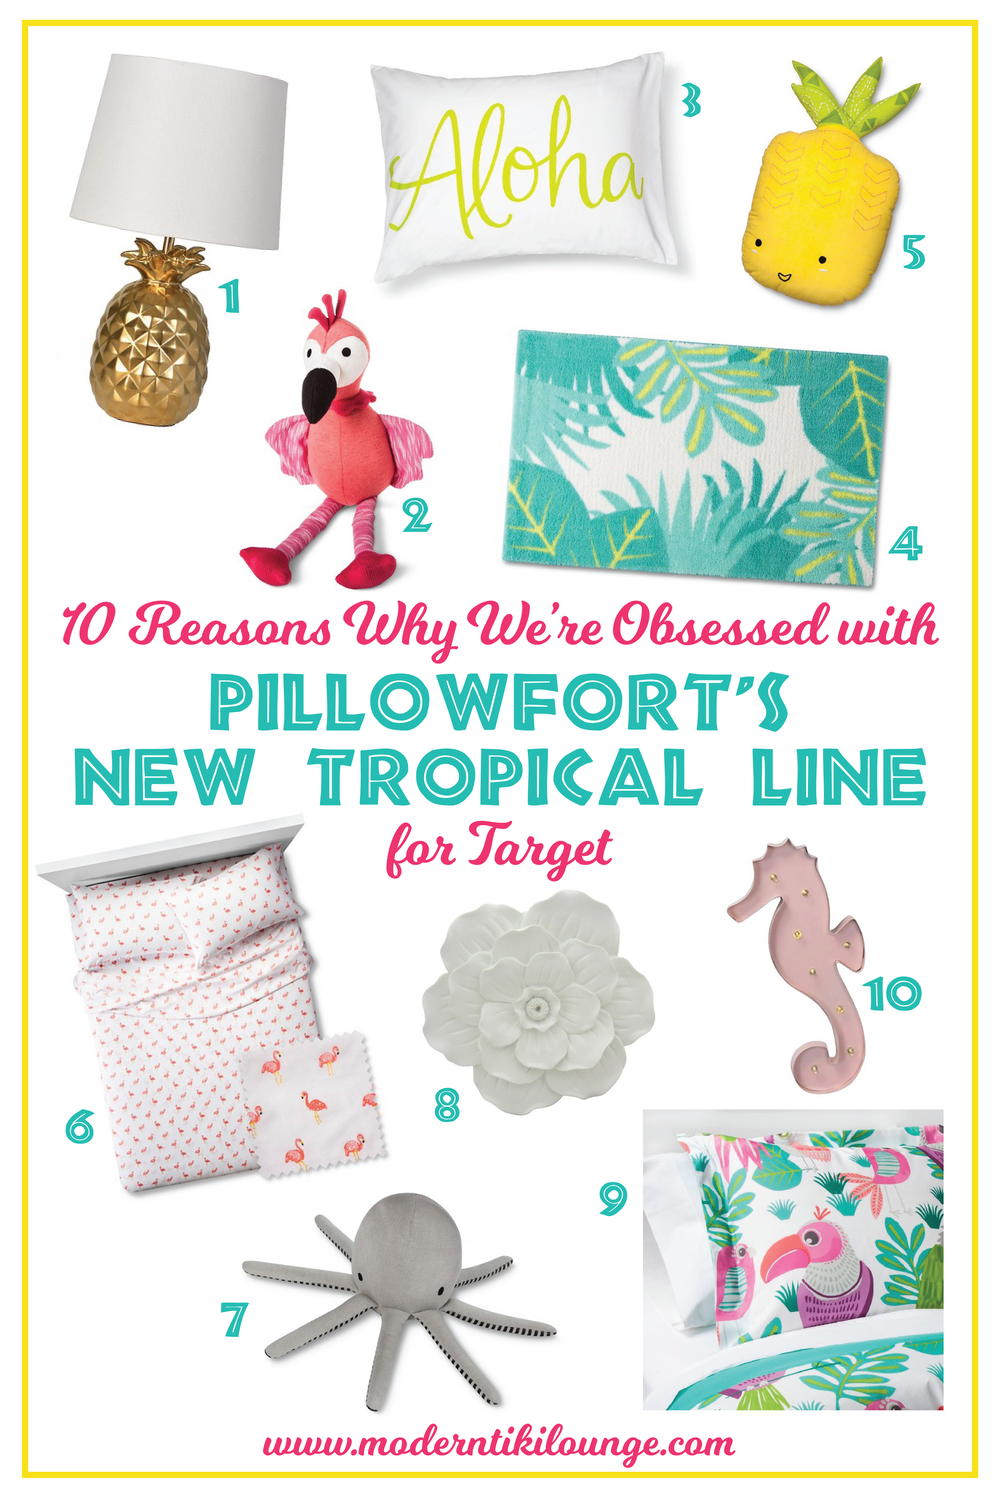 pillowfort-tropical-target-line.jpg